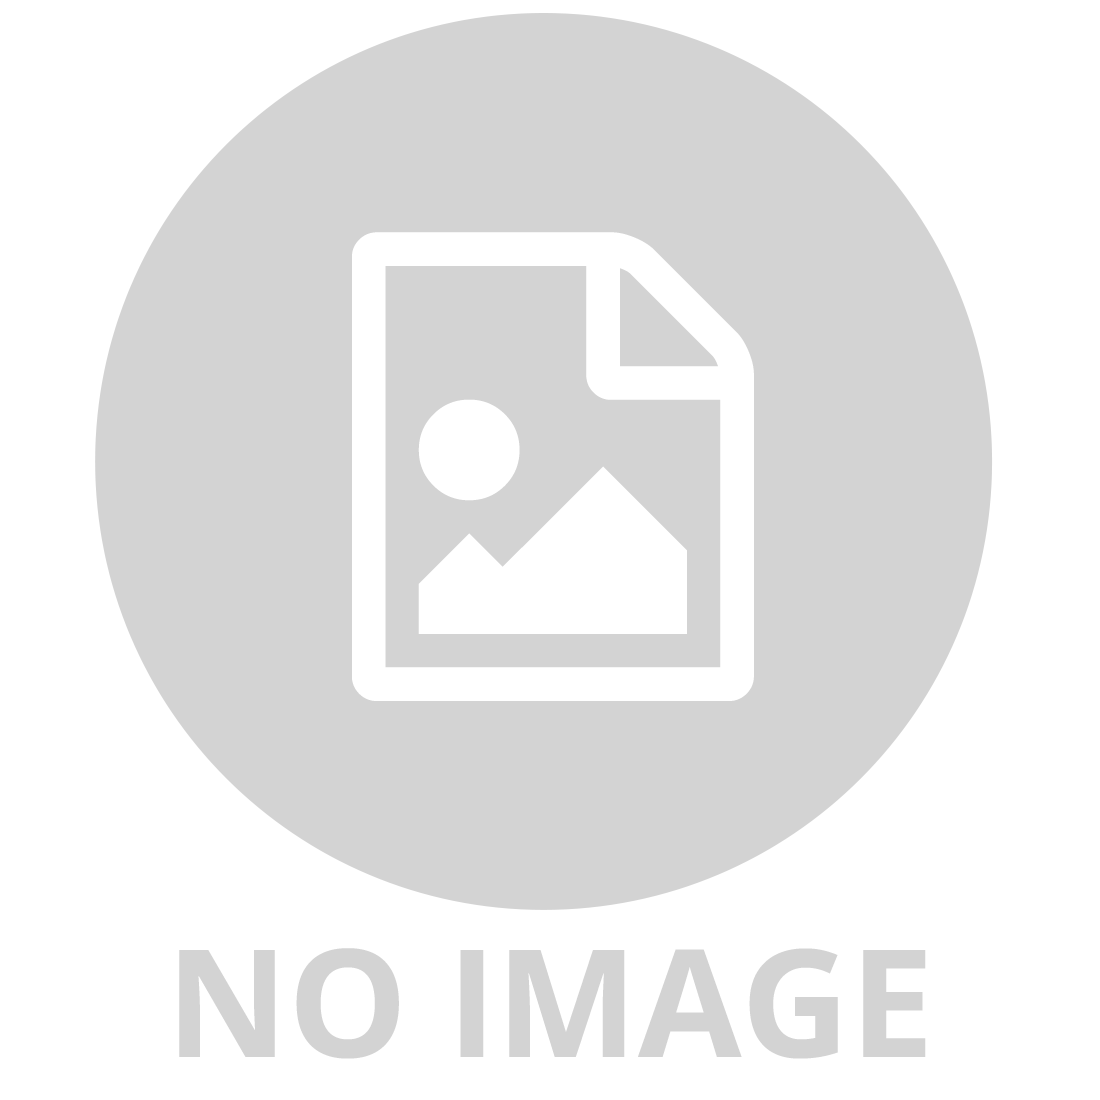 Melgoa Black Exterior Light 94792 IP44